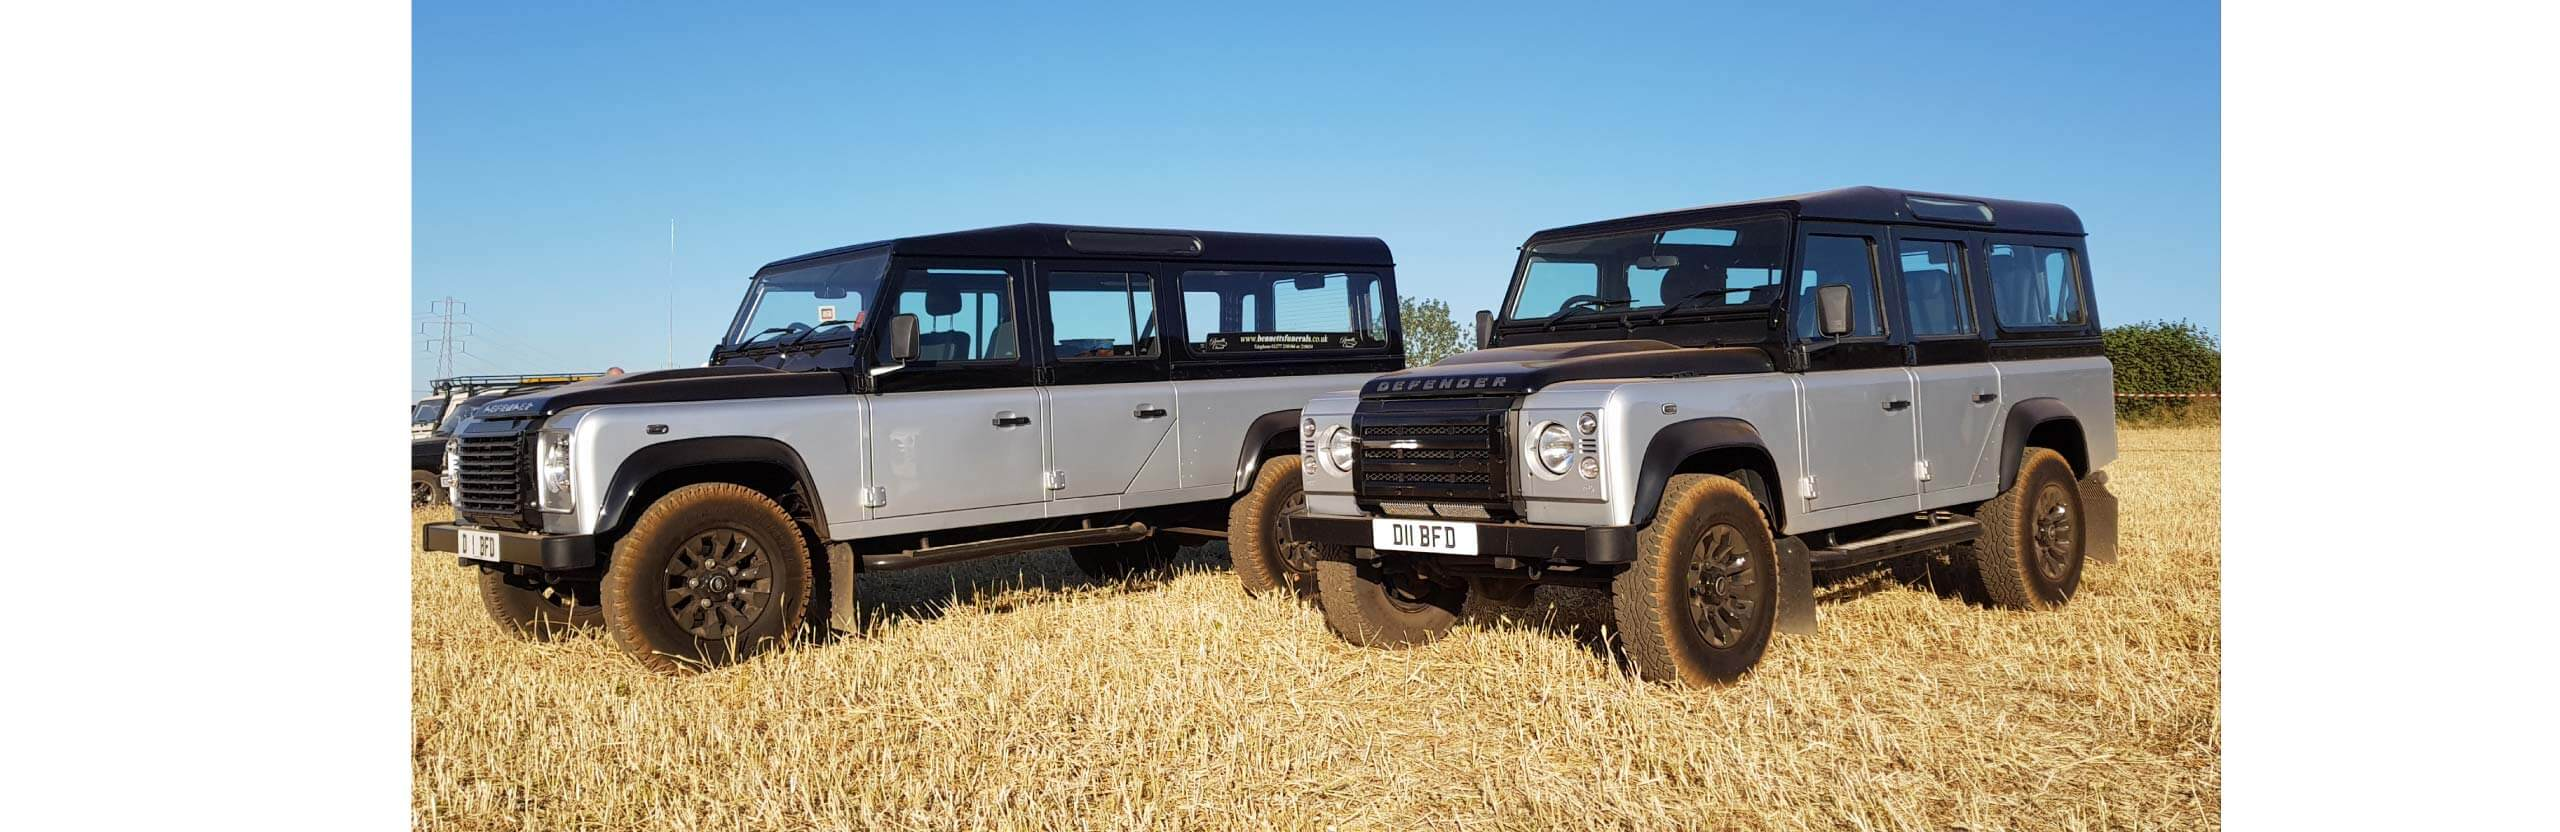 land rover funerals